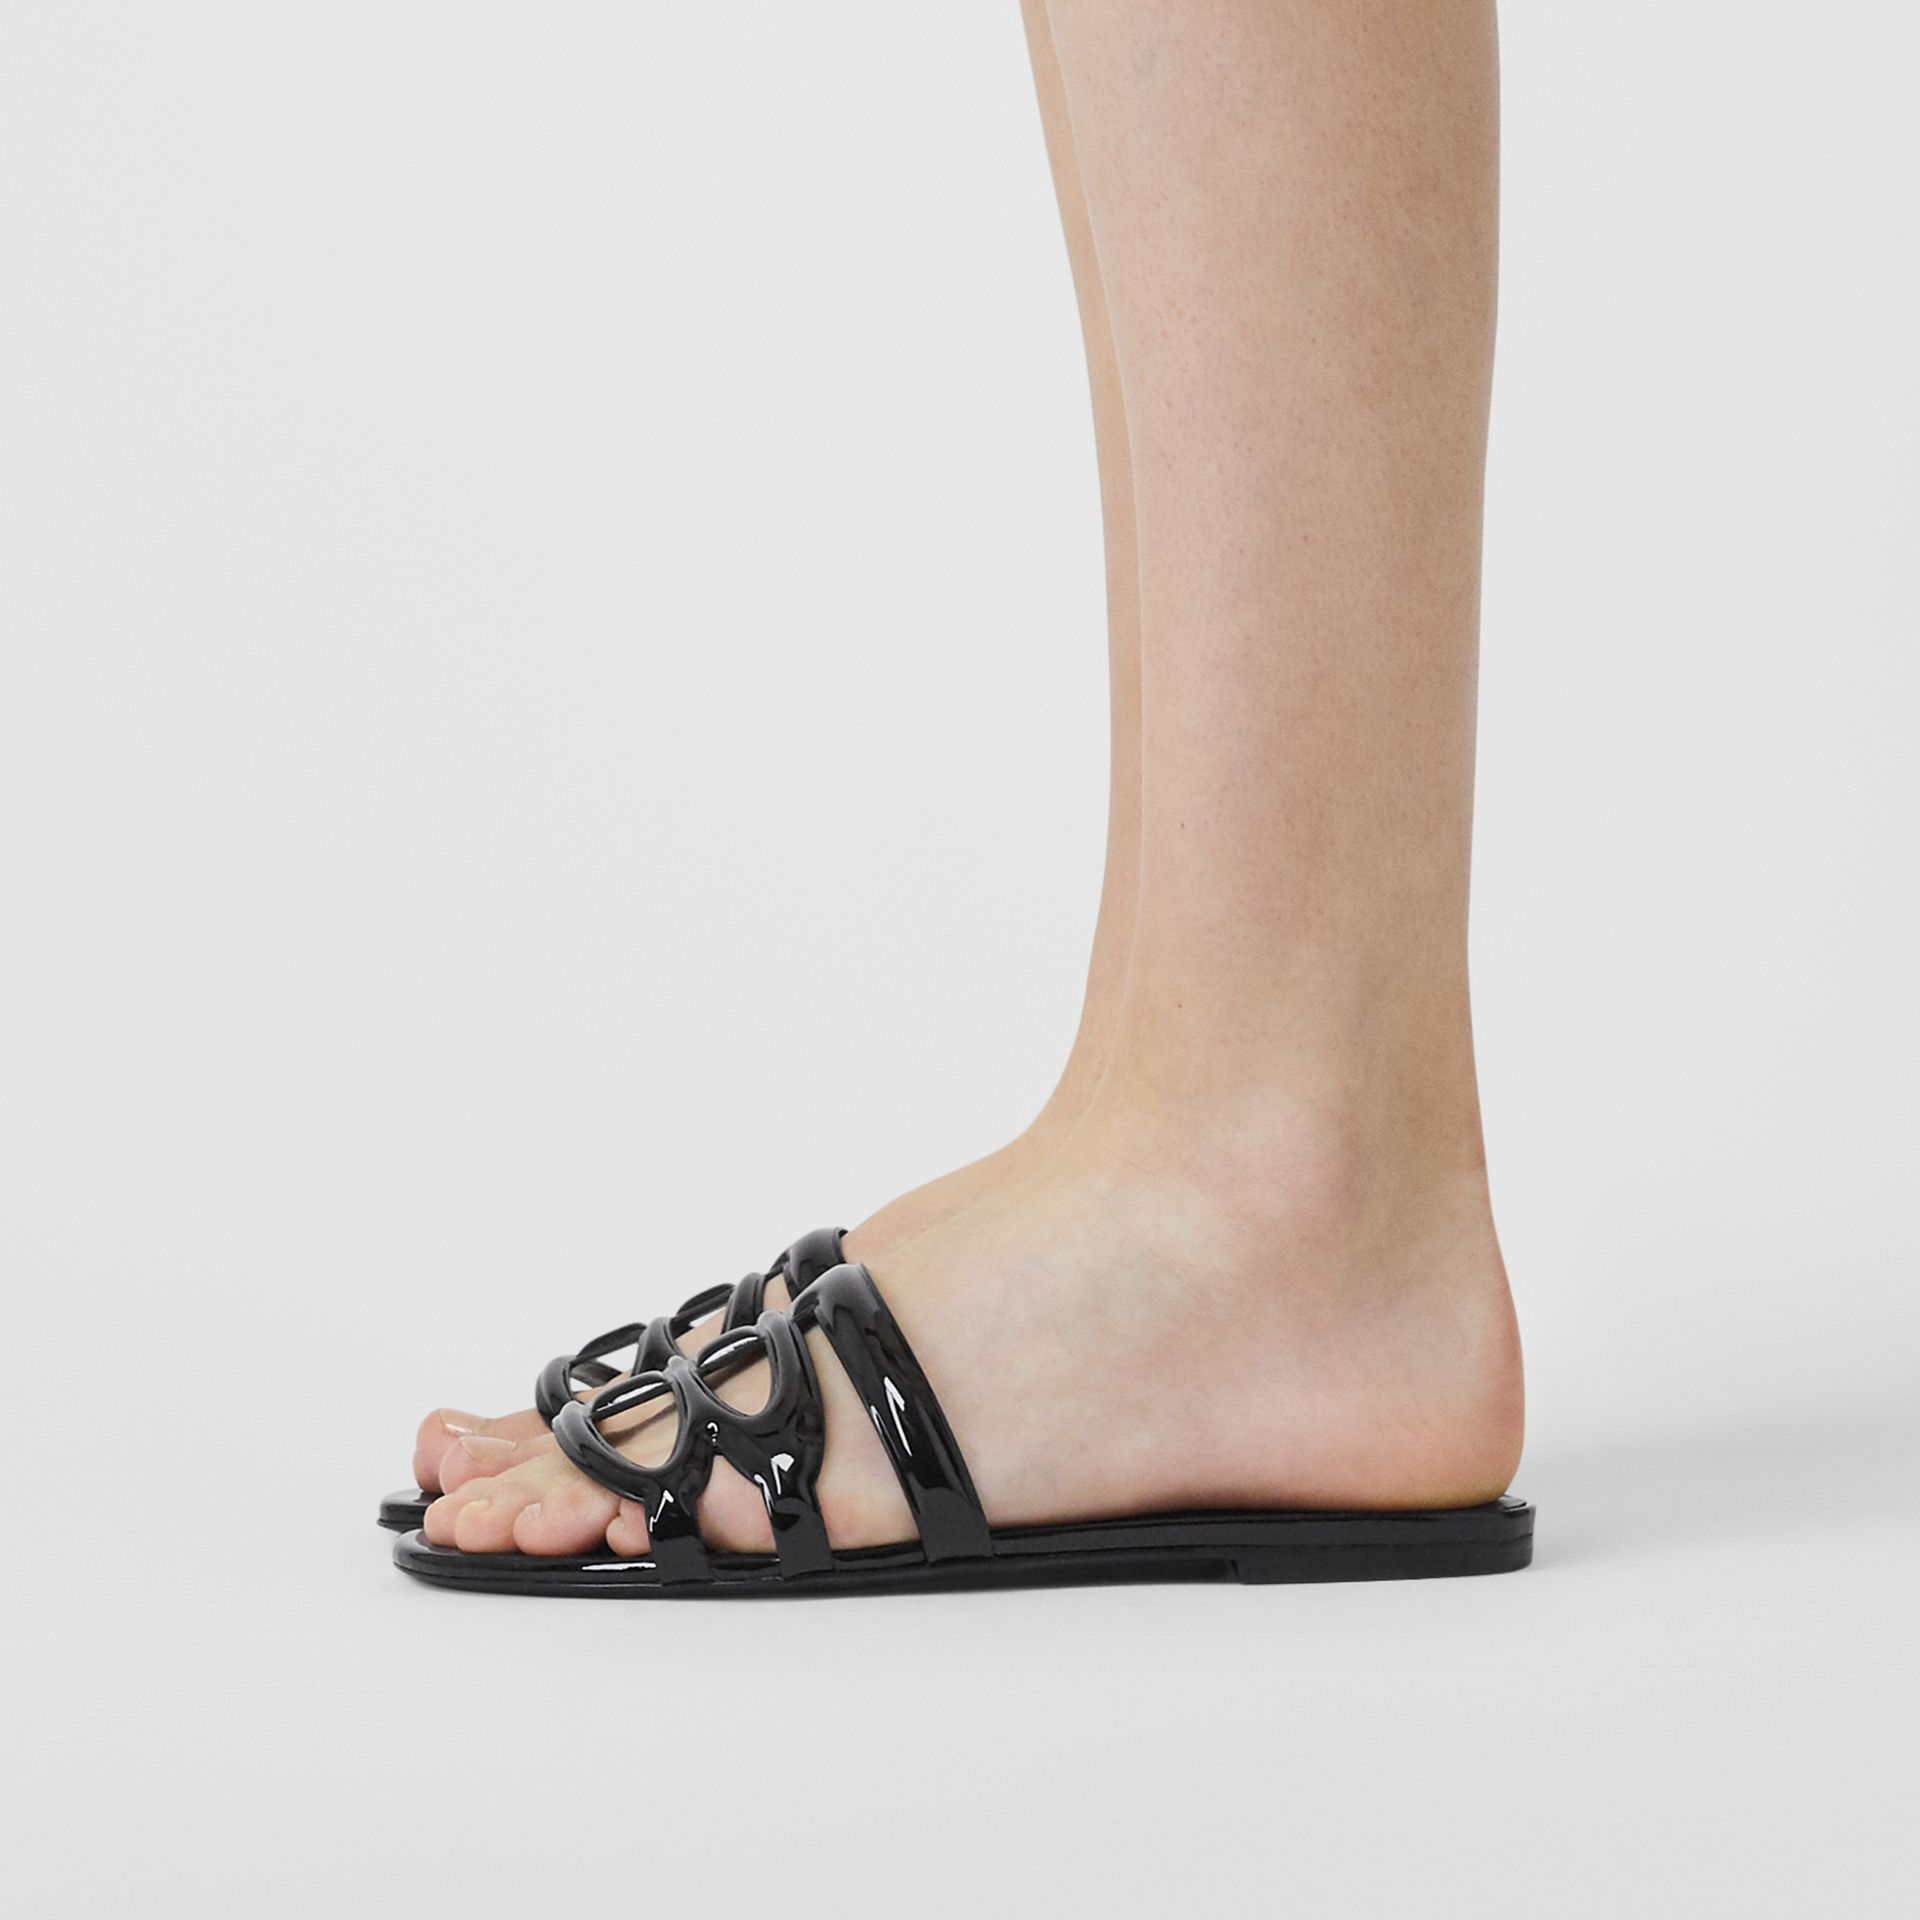 Monogram Motif Patent Leather Sandals in Black - Women | Burberry United Kingdom - gallery image 2